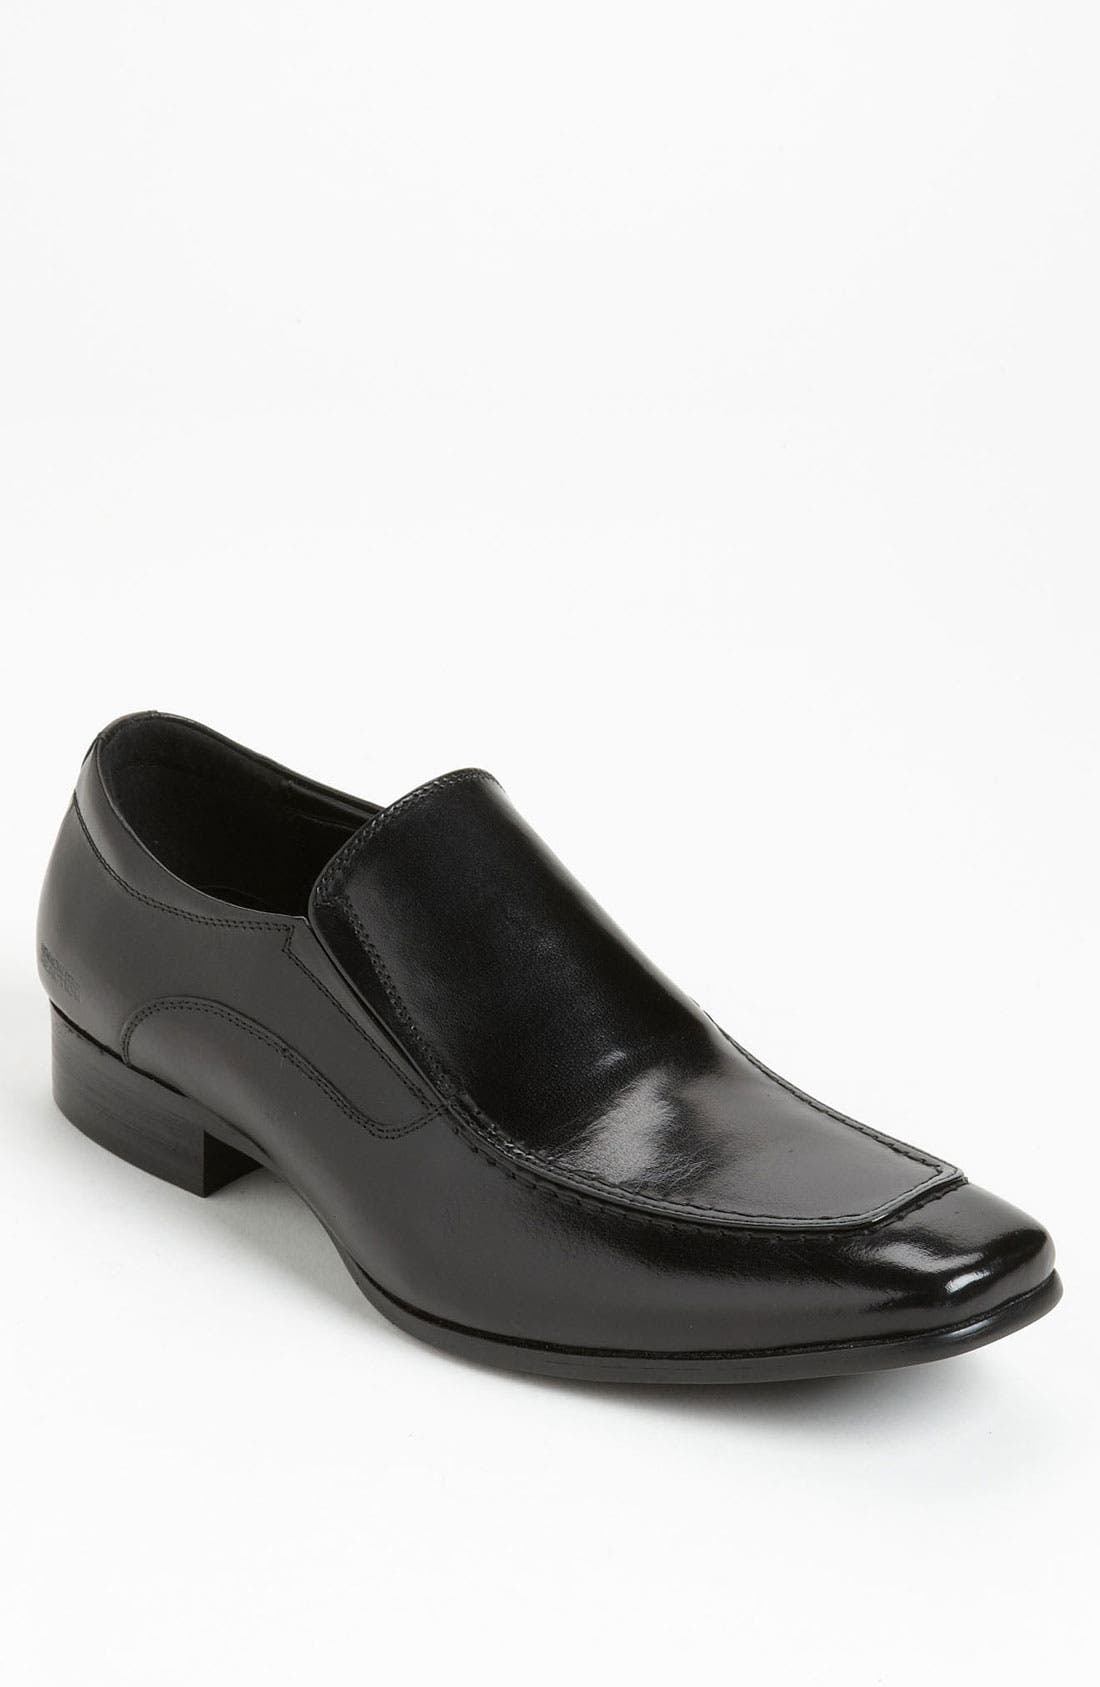 Main Image - Kenneth Cole Reaction 'Start Stitch' Loafer (Online Only)